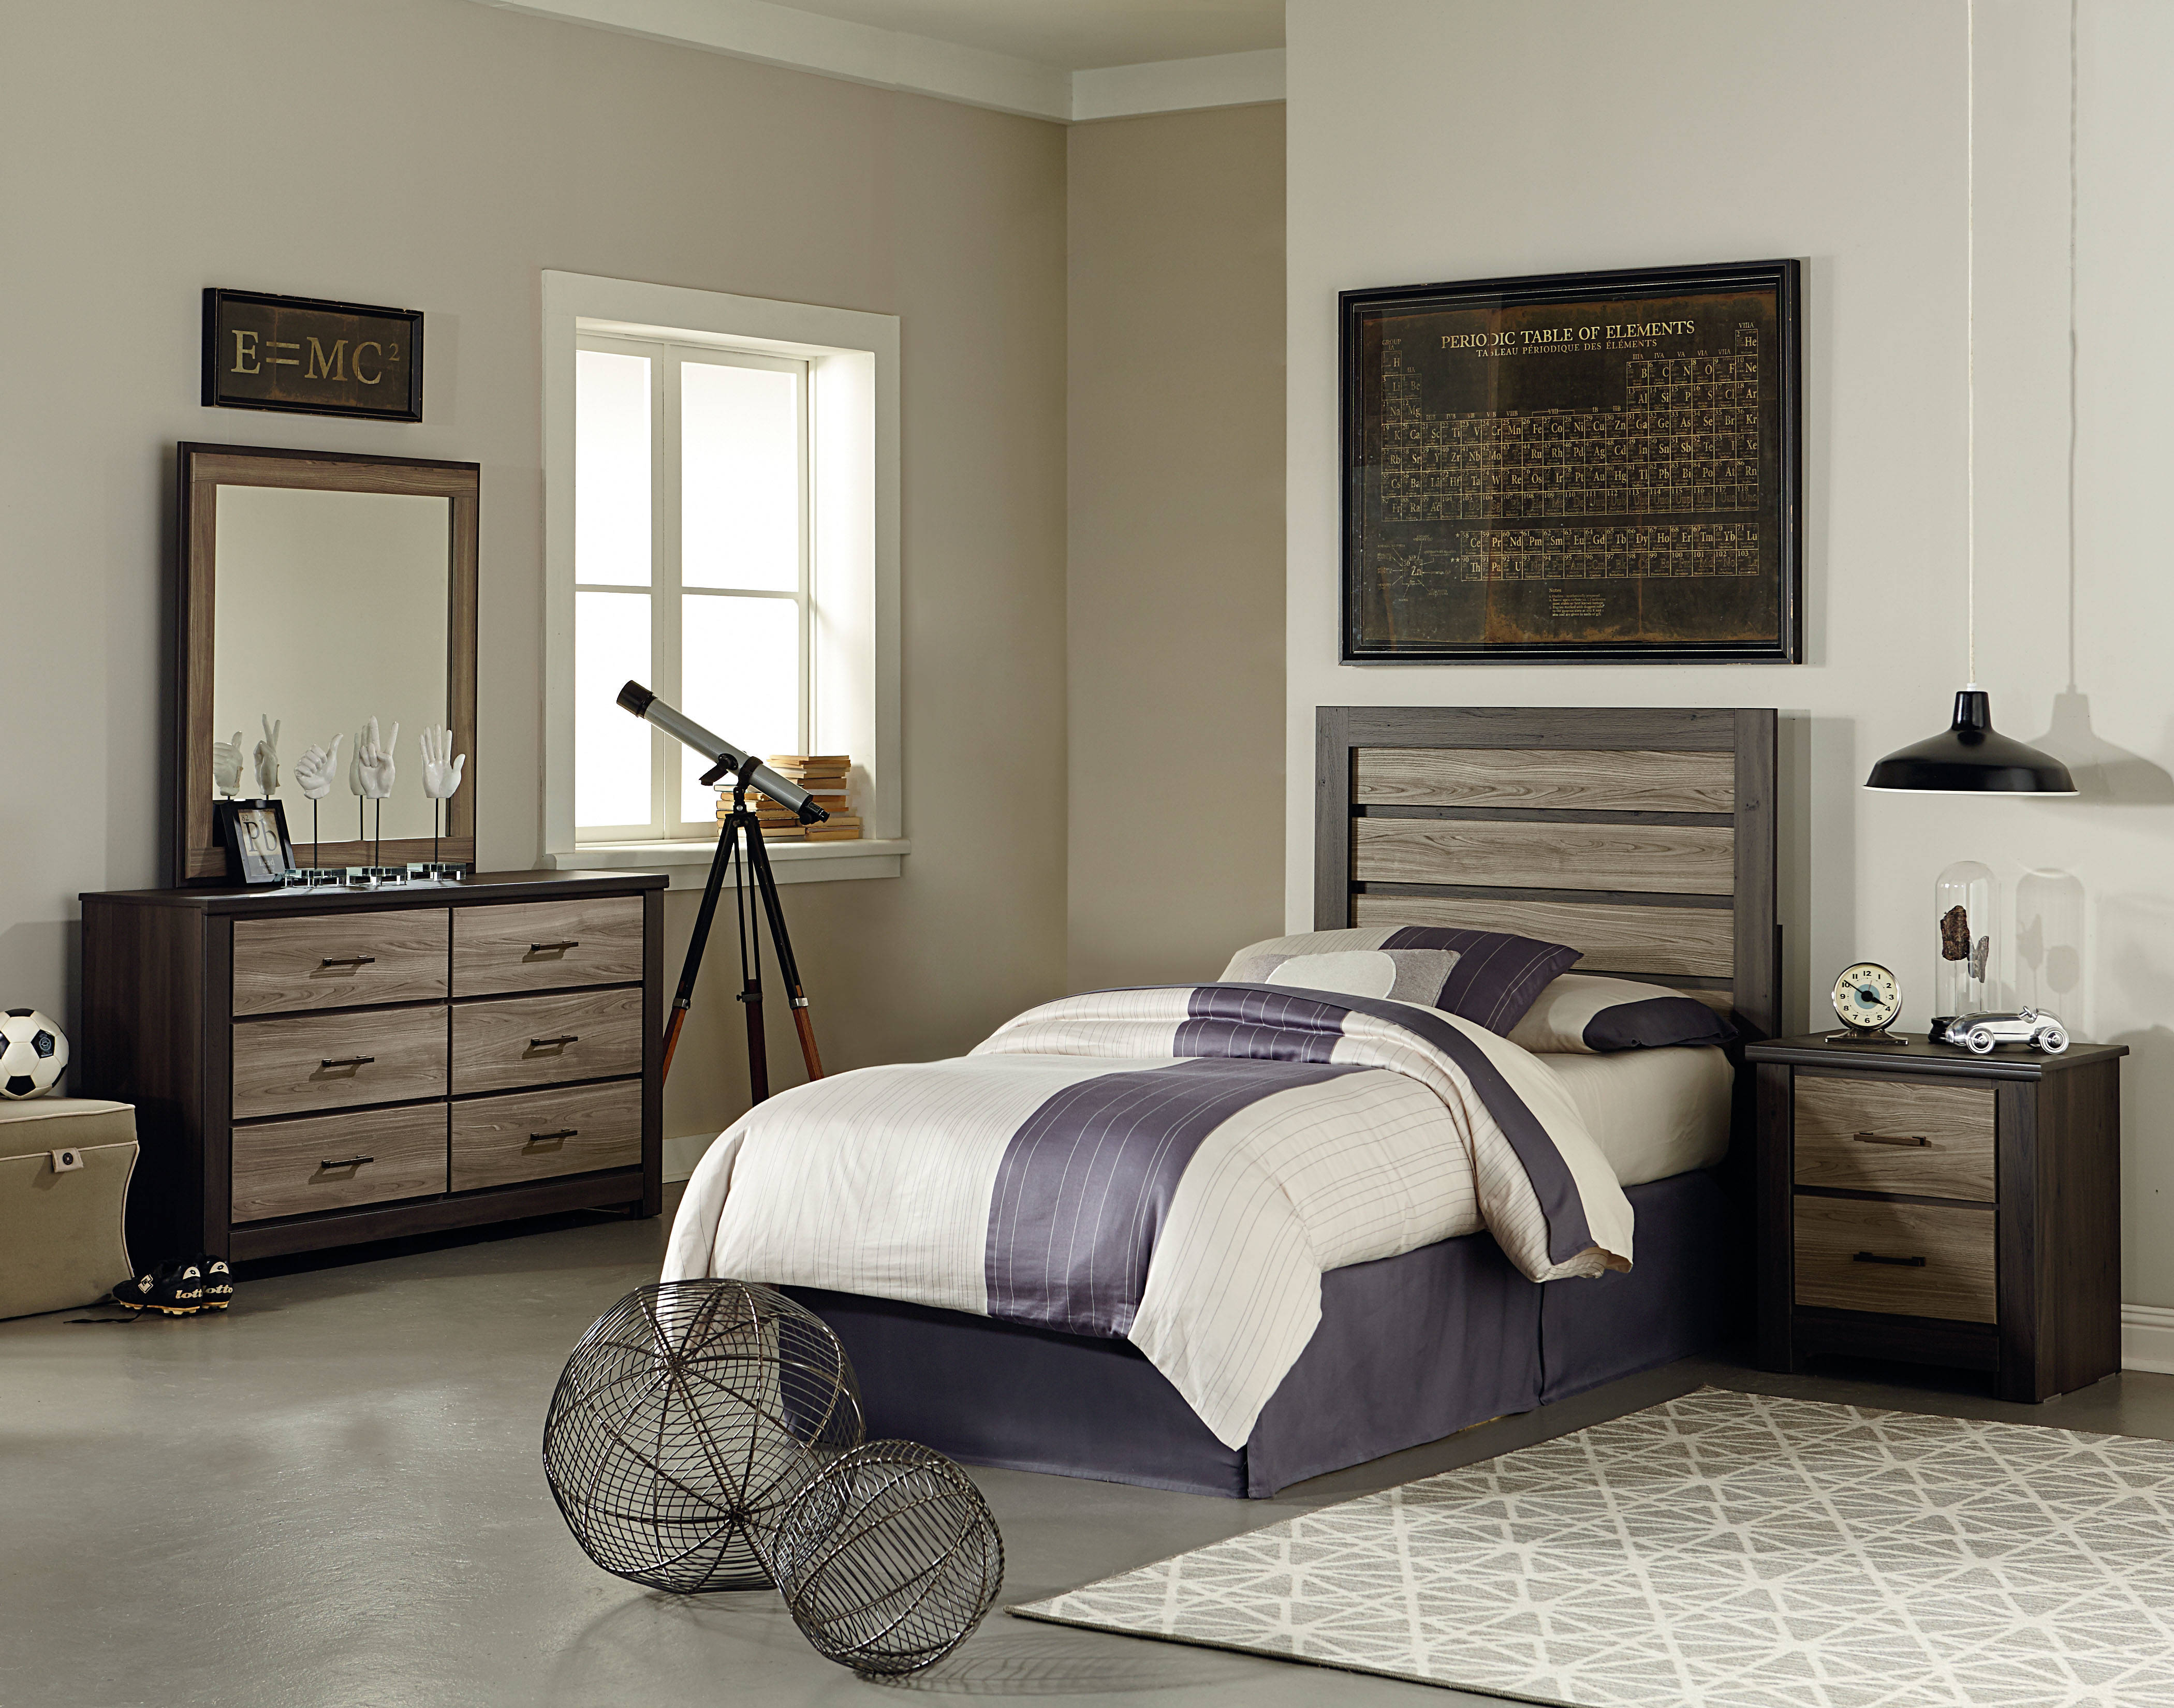 standard furniture oakland 2pc bedroom set with full panel bed the classy home. Black Bedroom Furniture Sets. Home Design Ideas